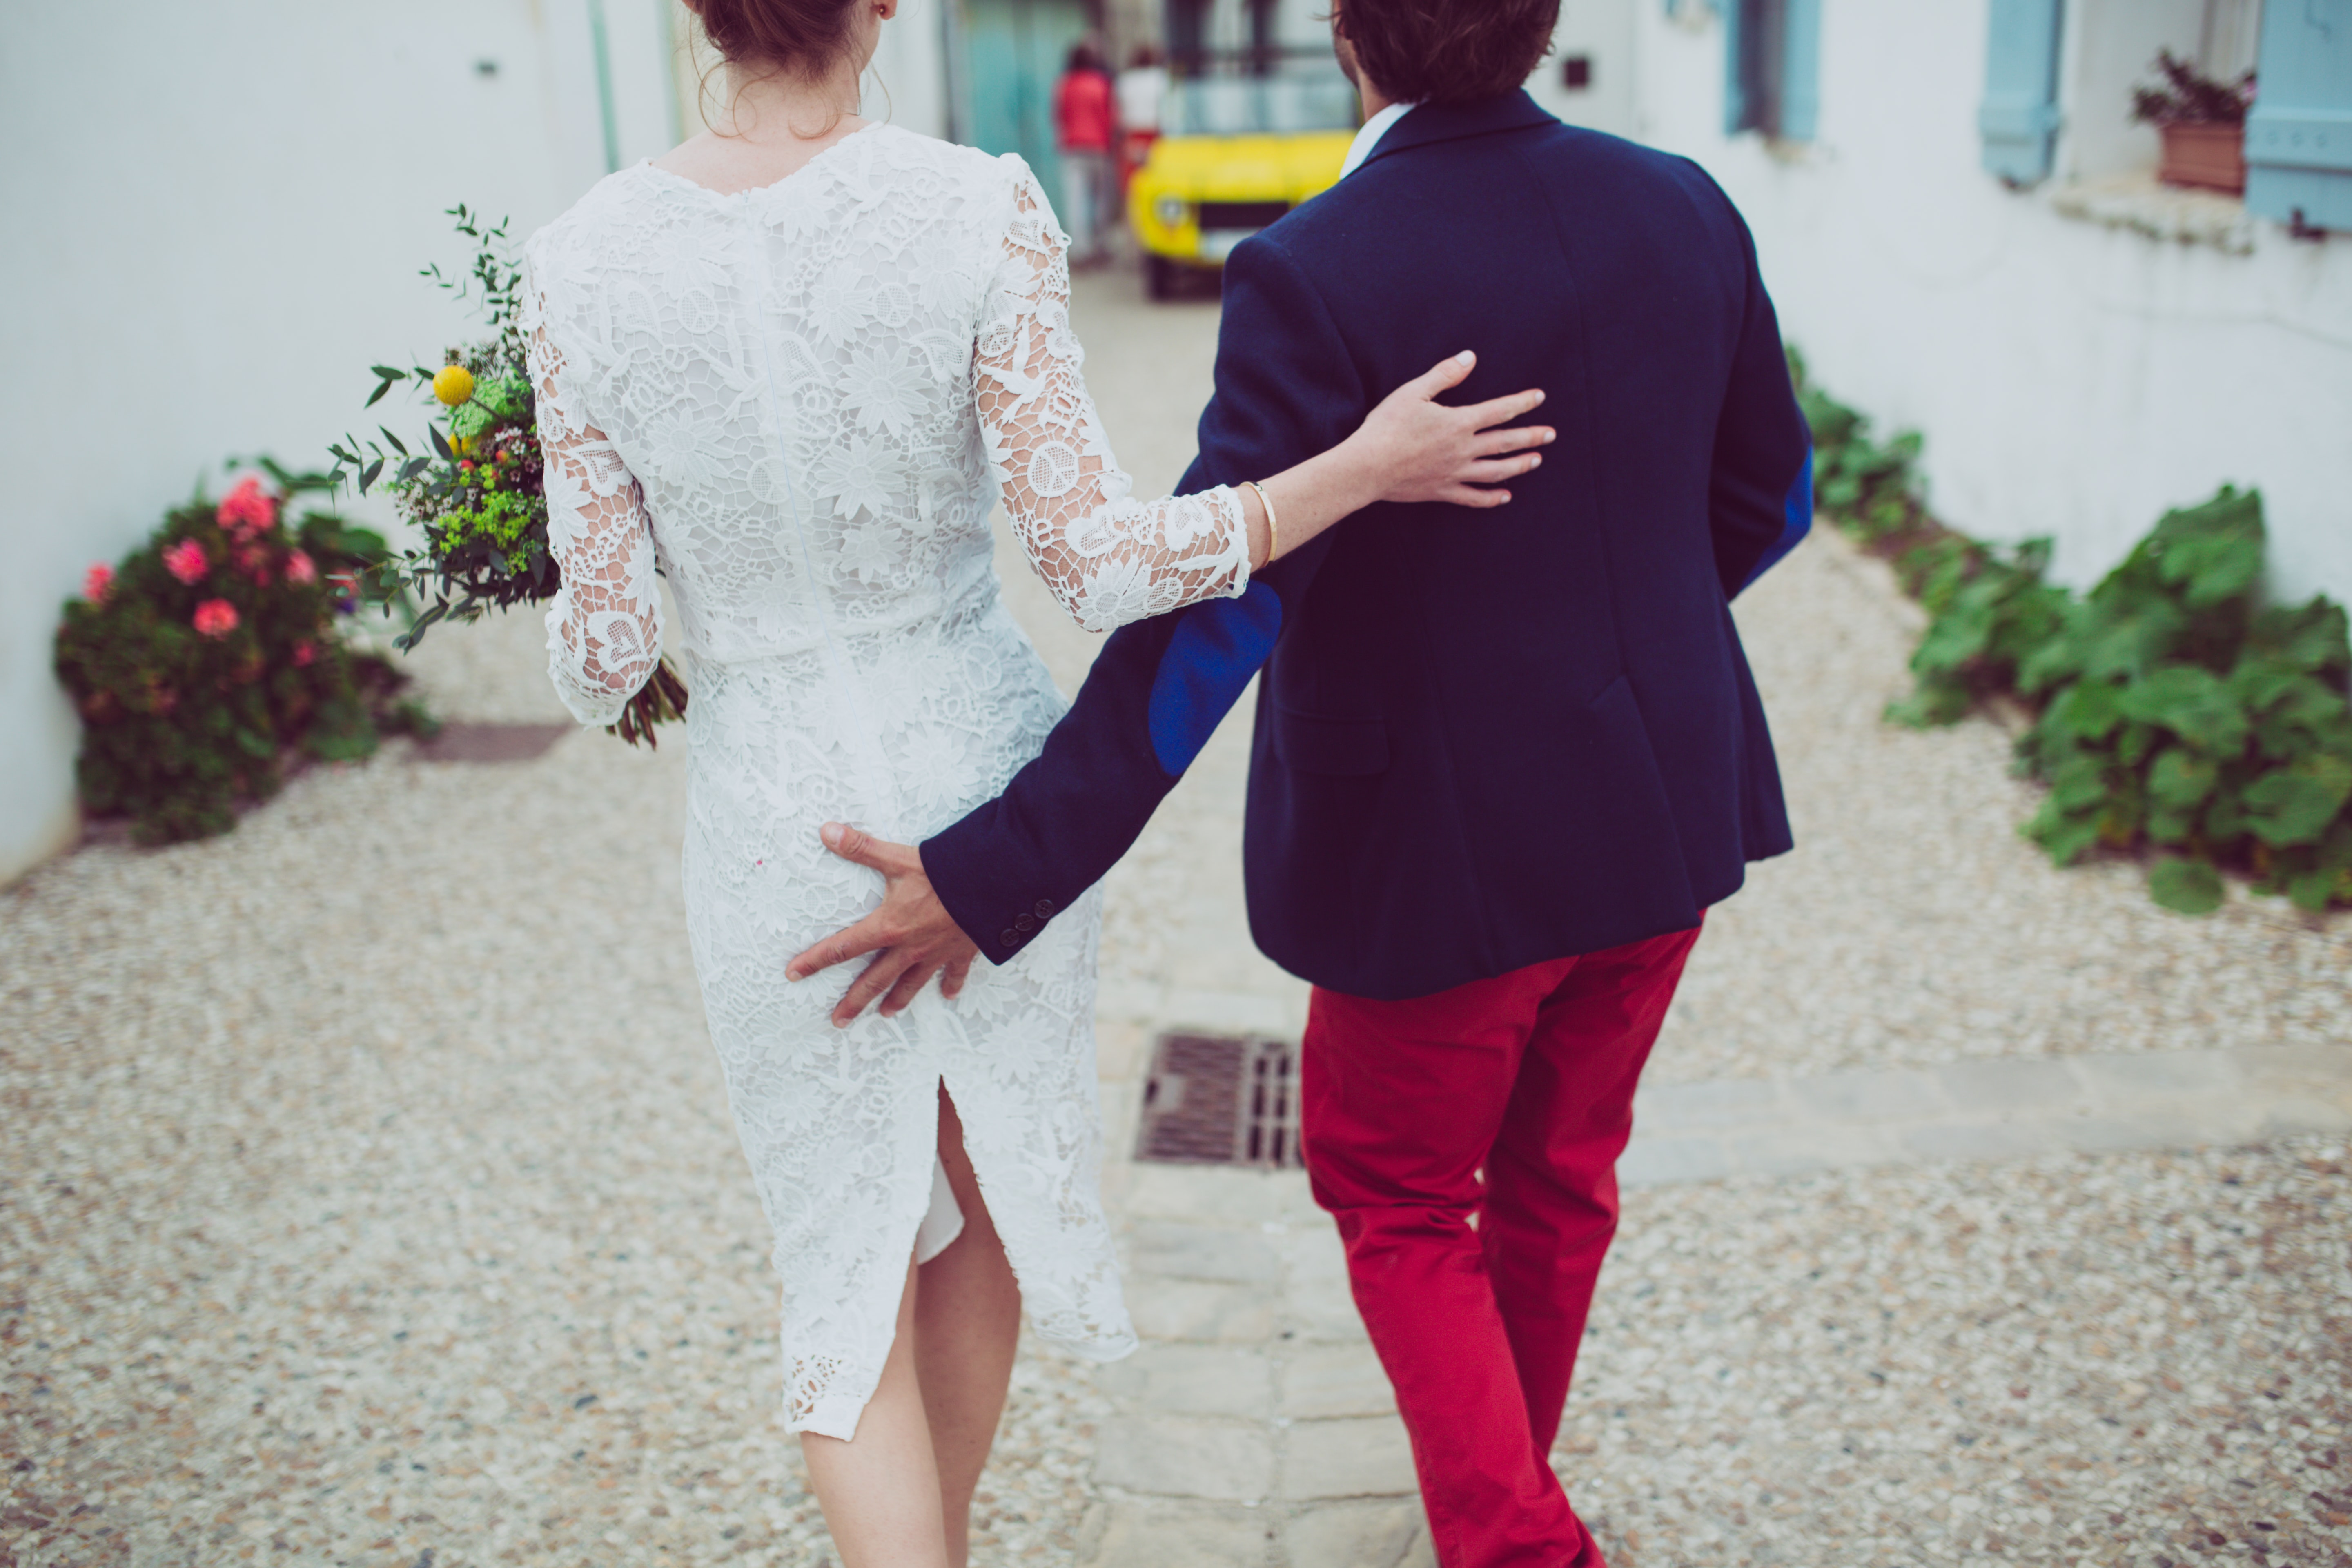 Man and woman are just married, walking away from the camera down an alley